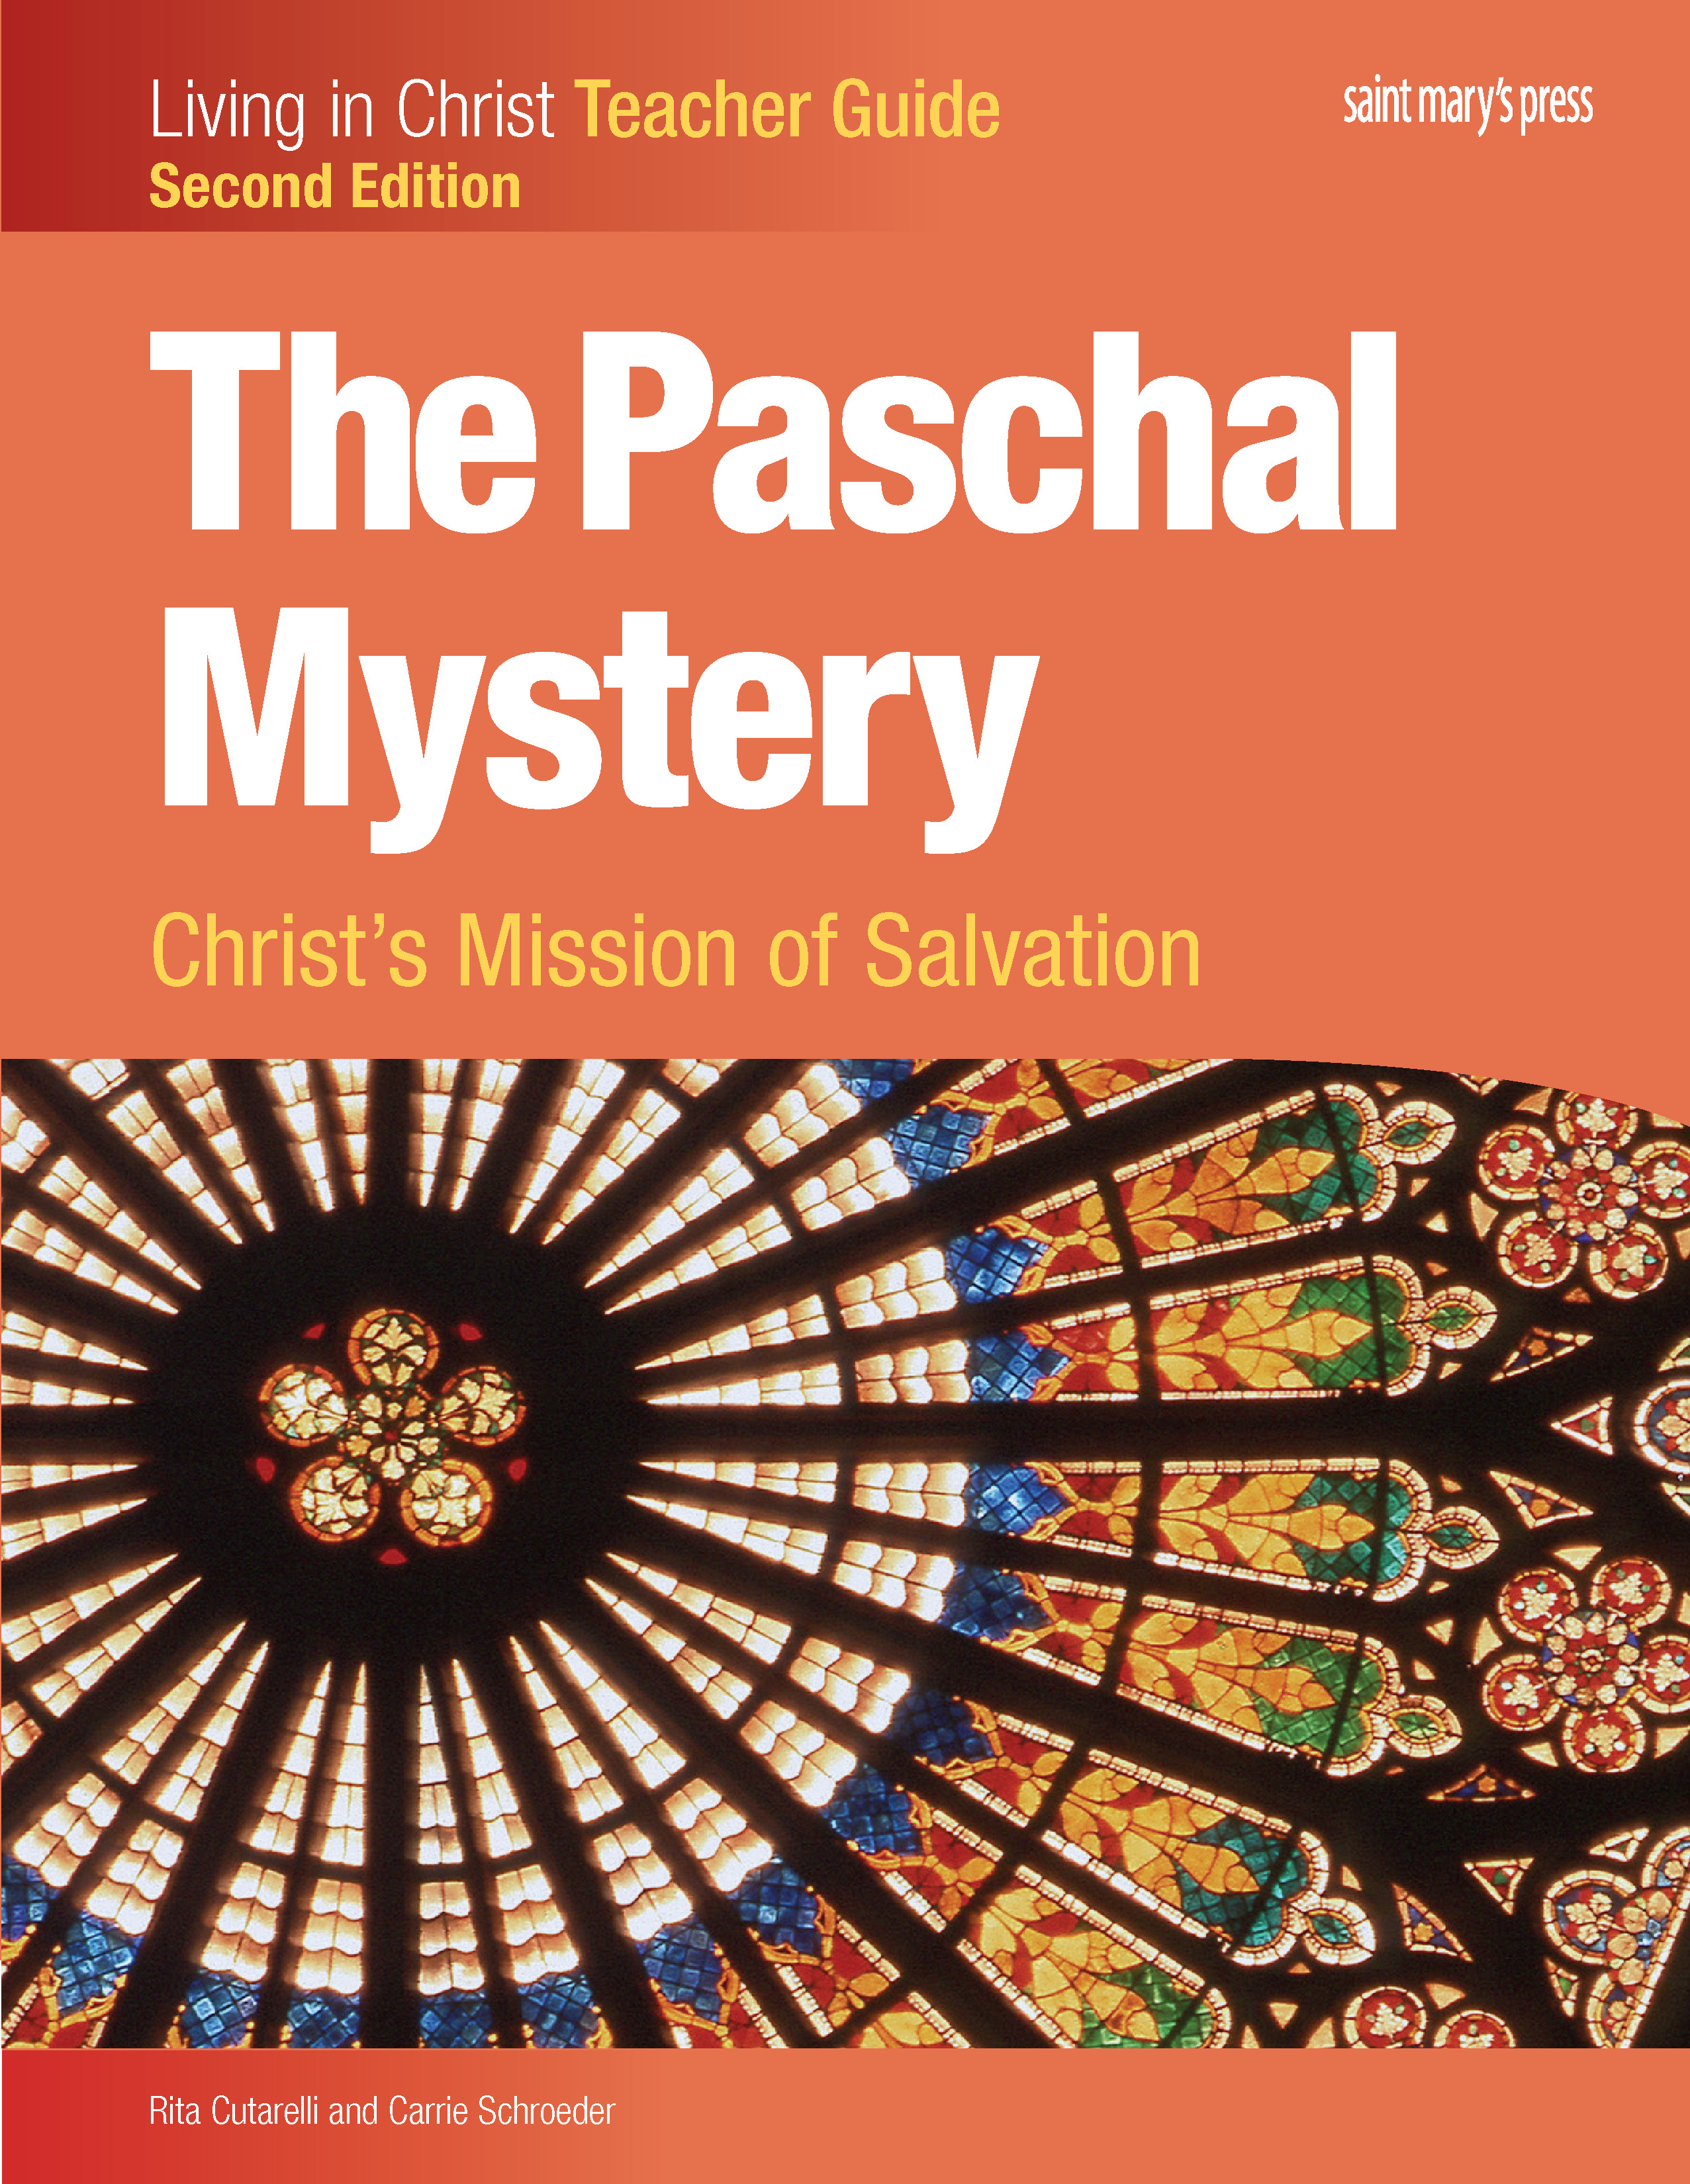 The Paschal Mystery: Christ's Mission of Salvation, Teacher Guide - Second Edition